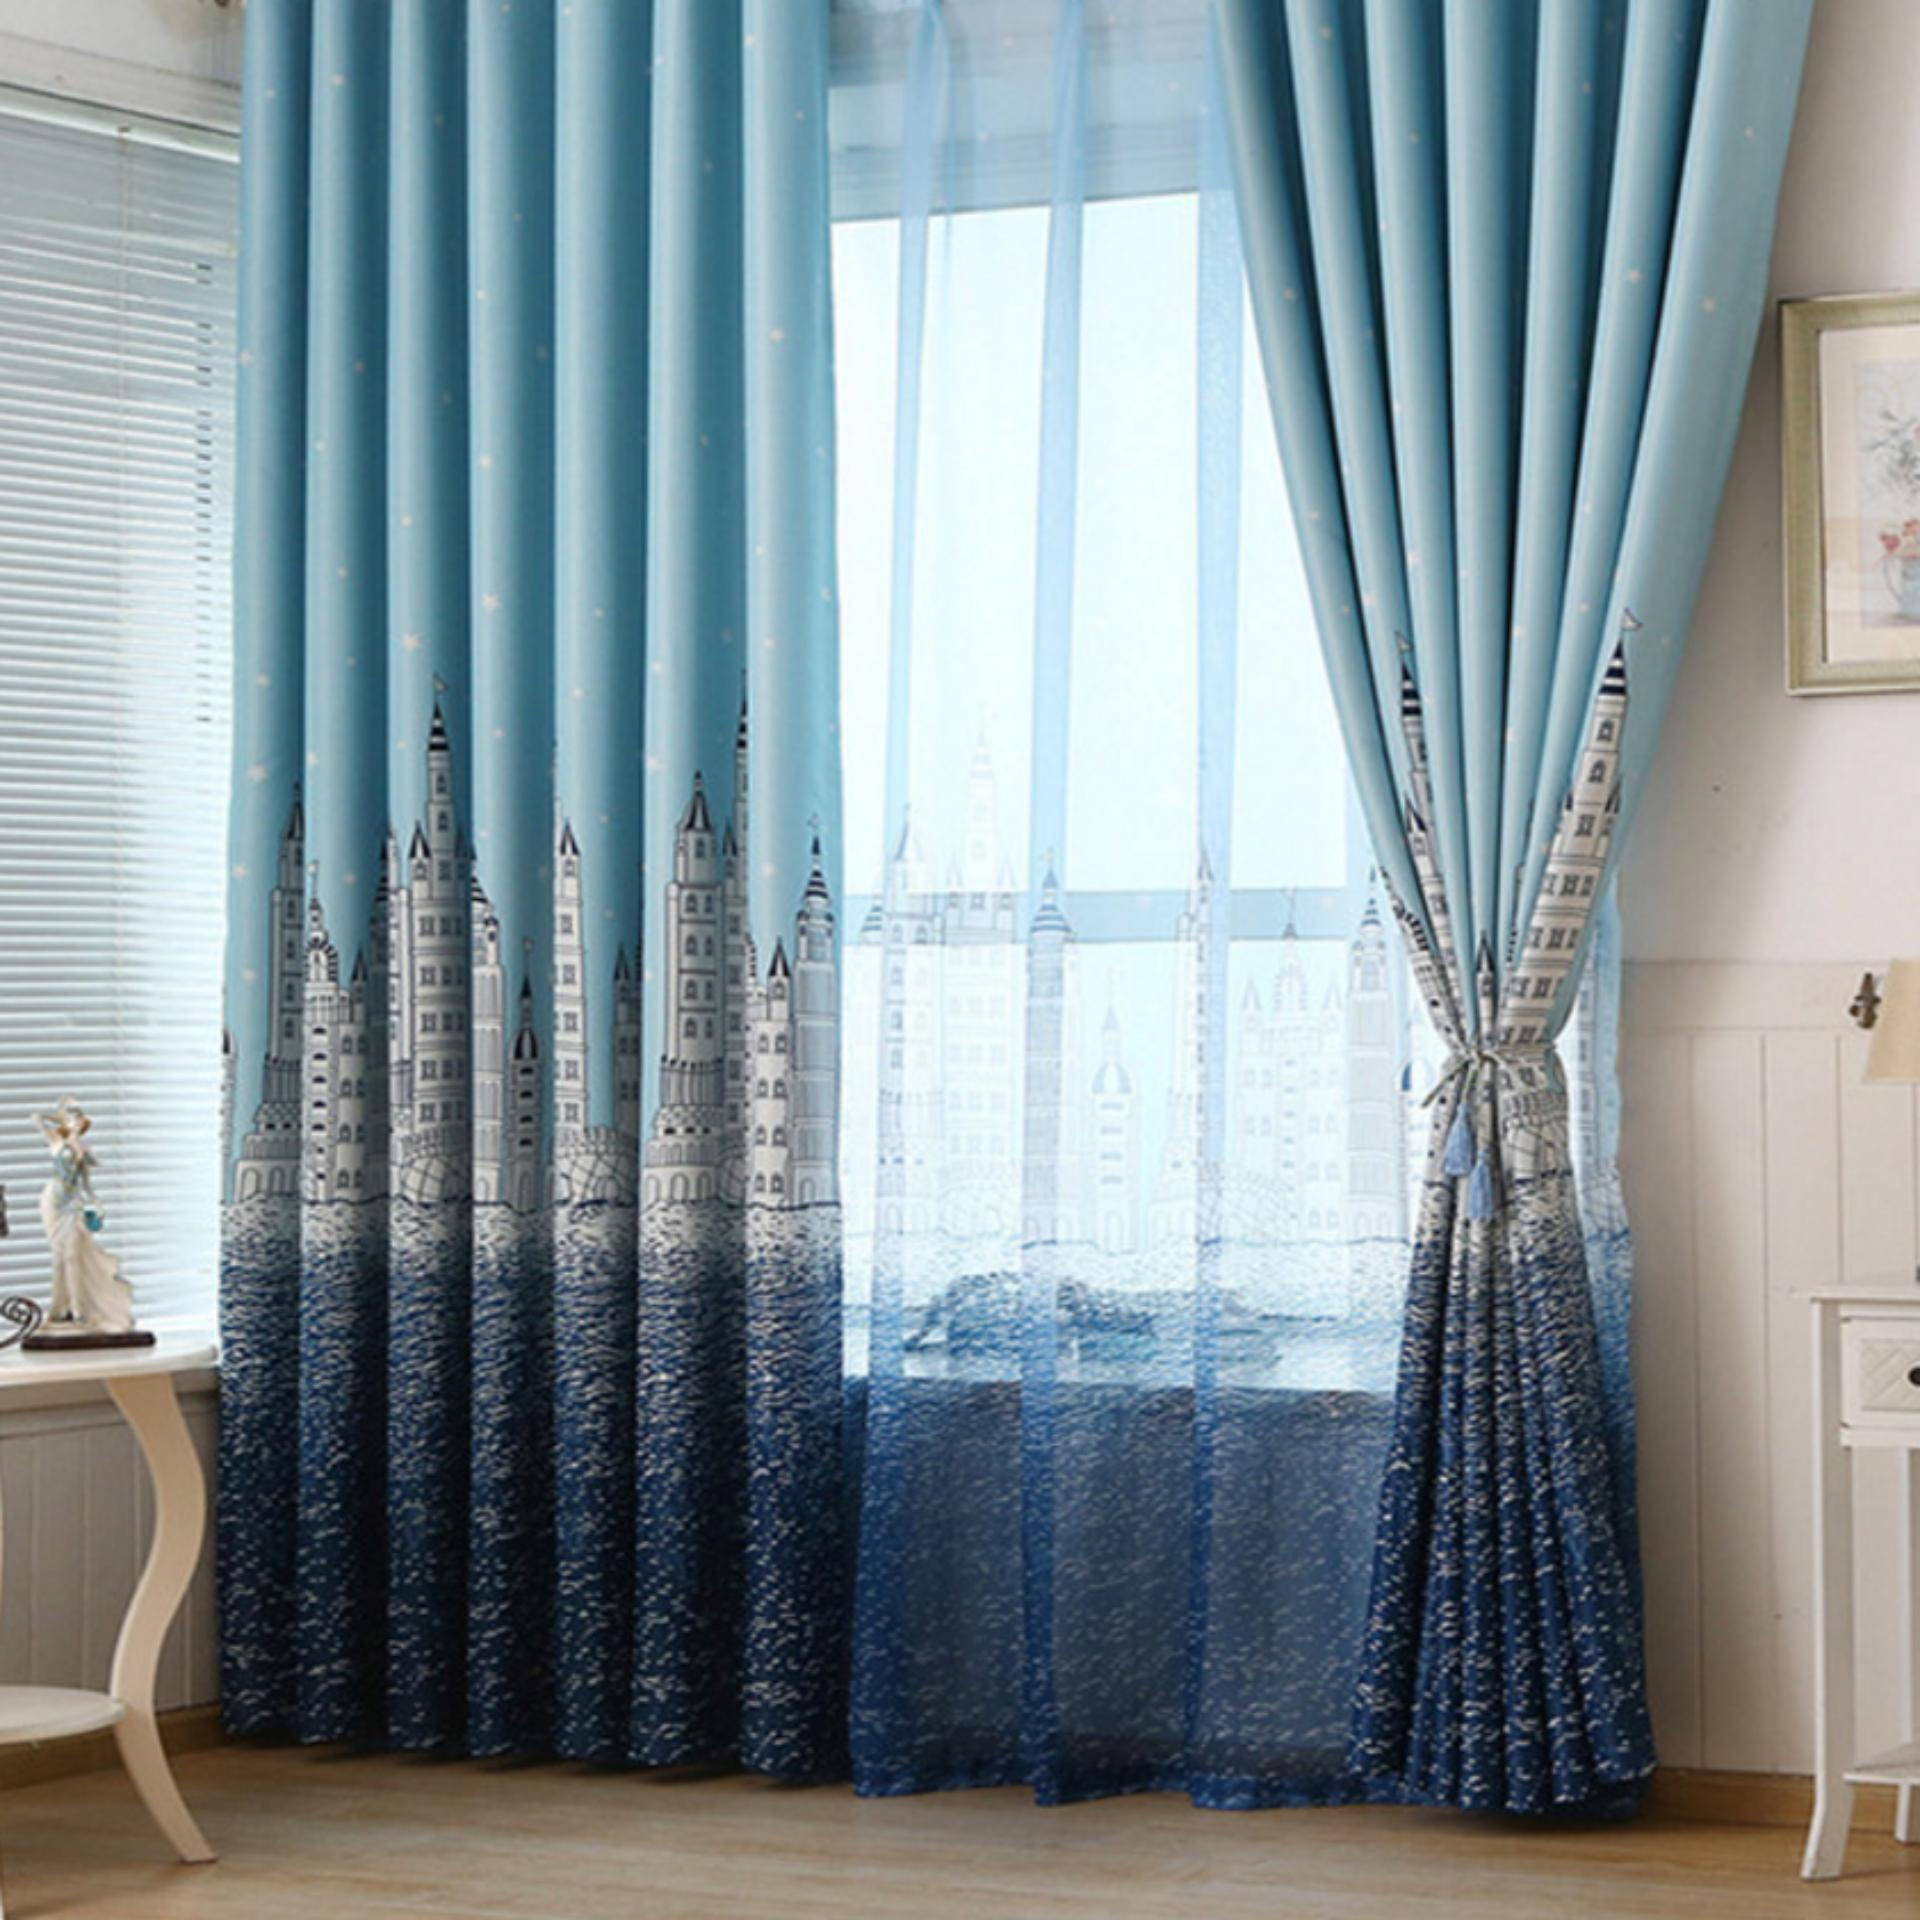 [OrangeHome] British Country Living Room Bedroom Balcony Panel Divider Curtains Drape Sky Blue 100*250 (hook free) (1 pcs) - intl